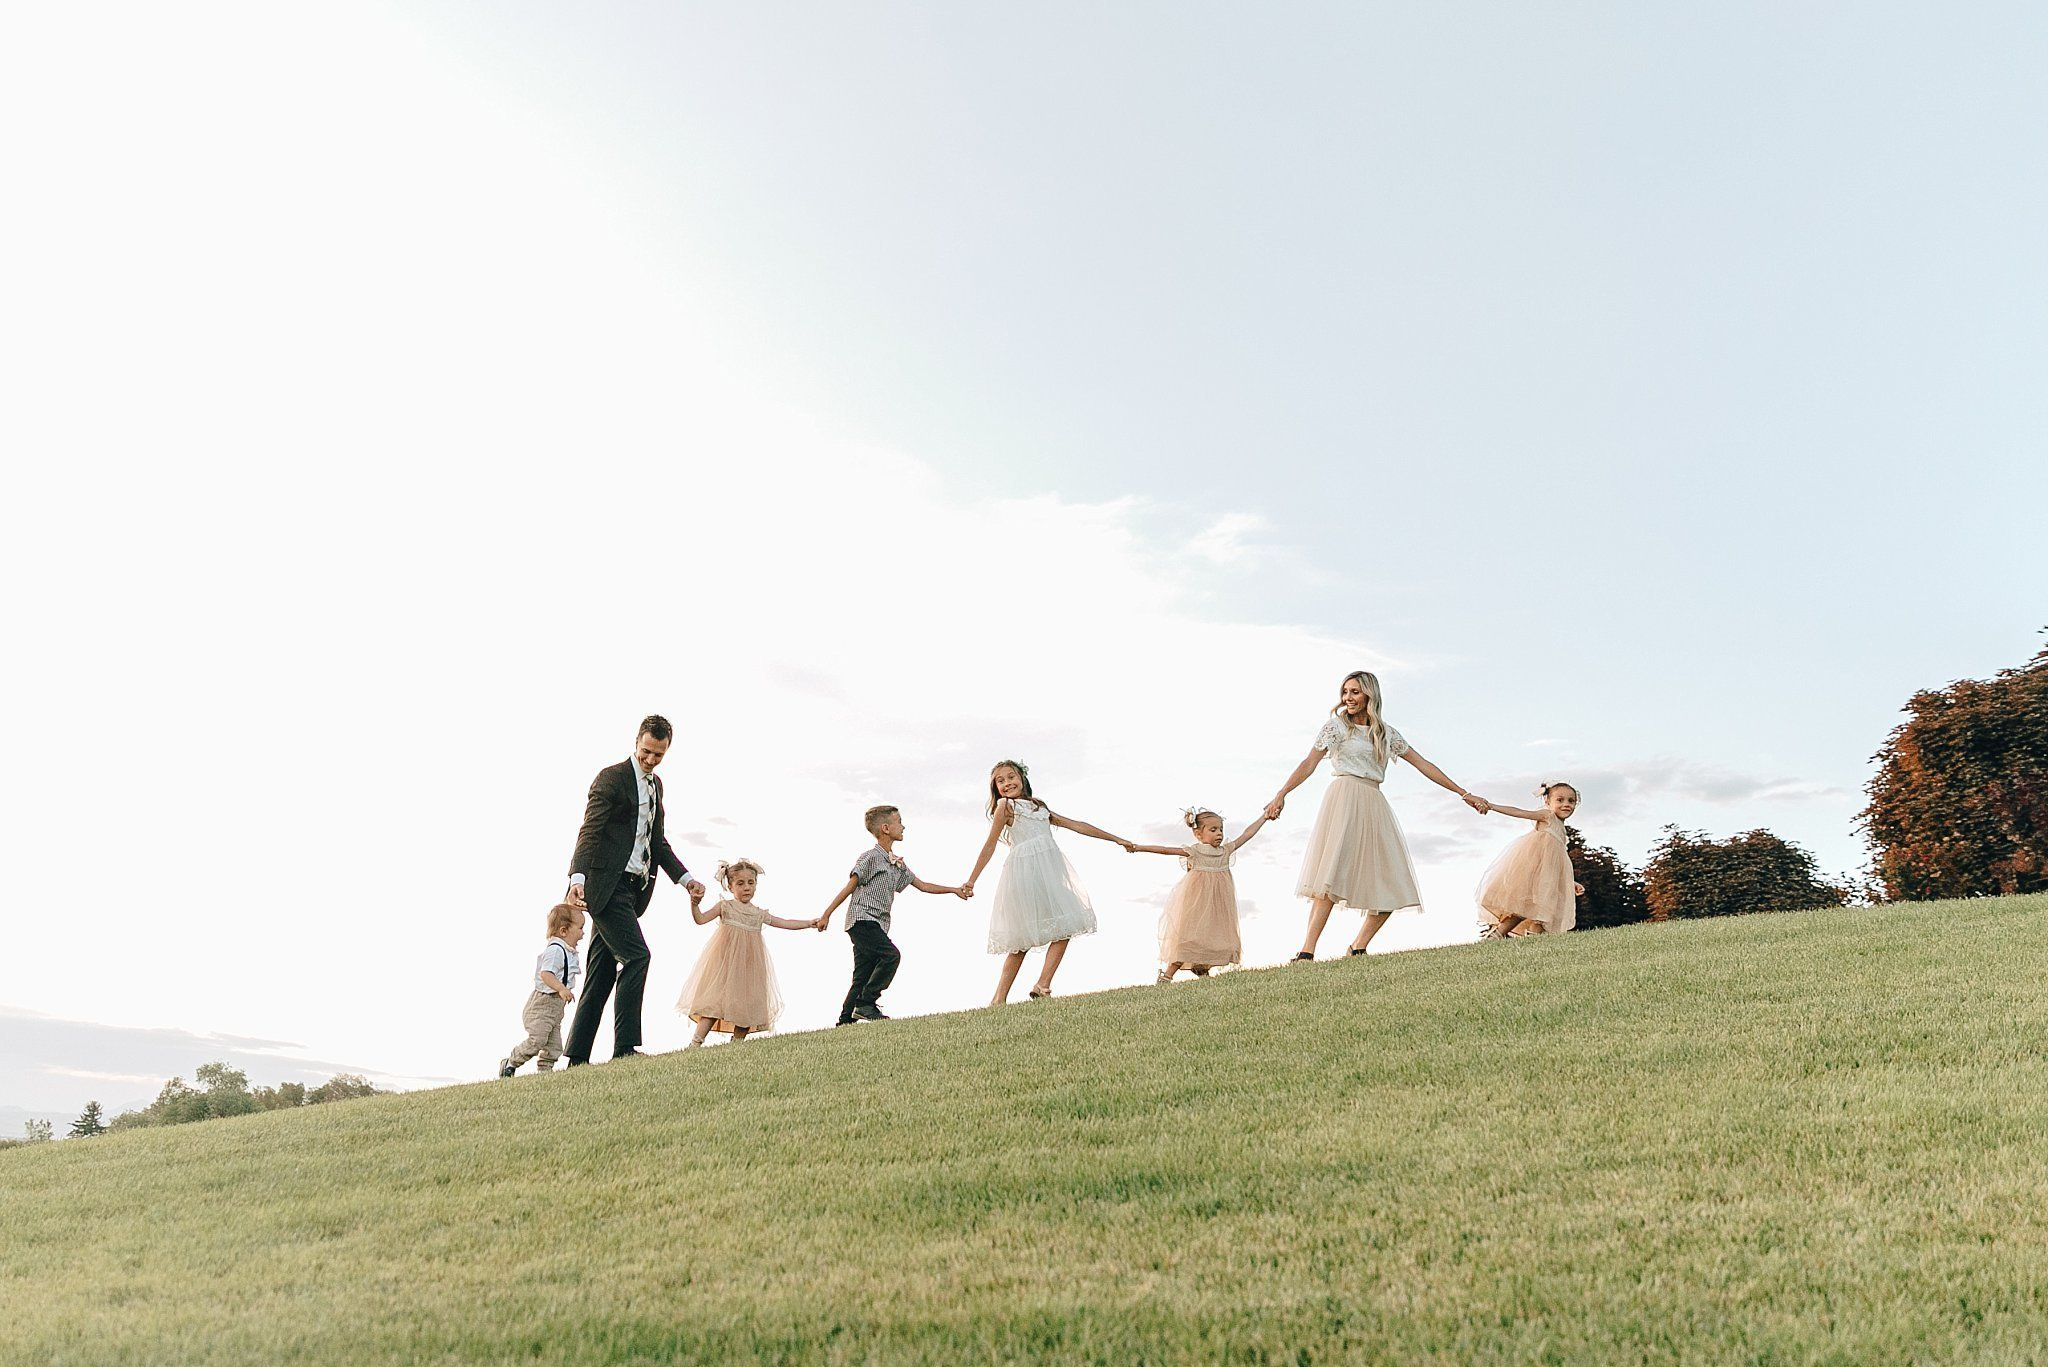 Family pictures at the temple logan utah temple with six